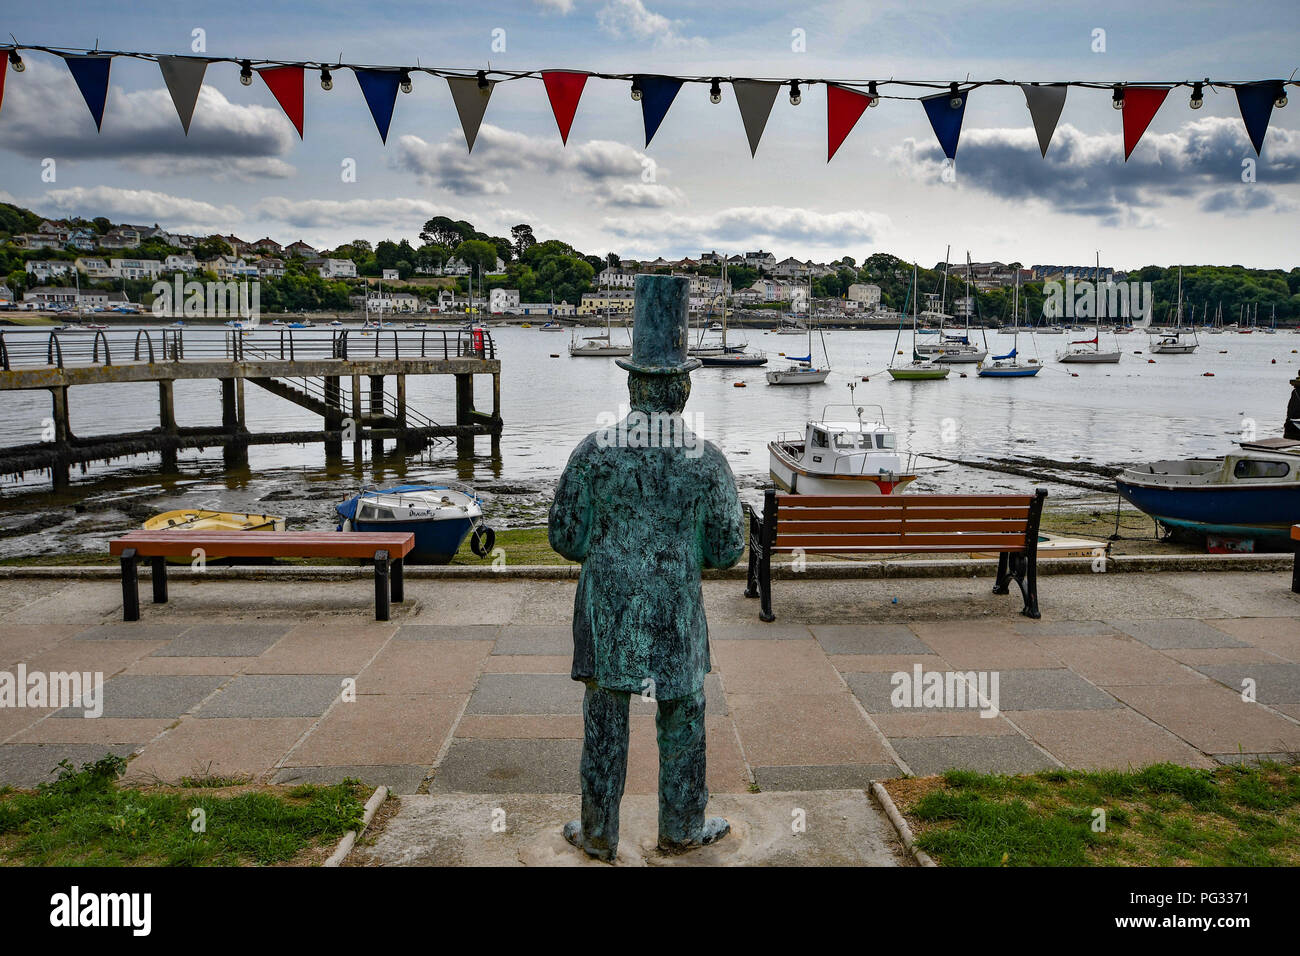 Saltash, Cornwall, UK. 23rd Aug, 2018. UK Weather. Sunny luchtime at Saltash. Seen here a statue of Isambard Kingdom Brunel looking out across the Tamar. Credit: Simon Maycock/Alamy Live News Stock Photo